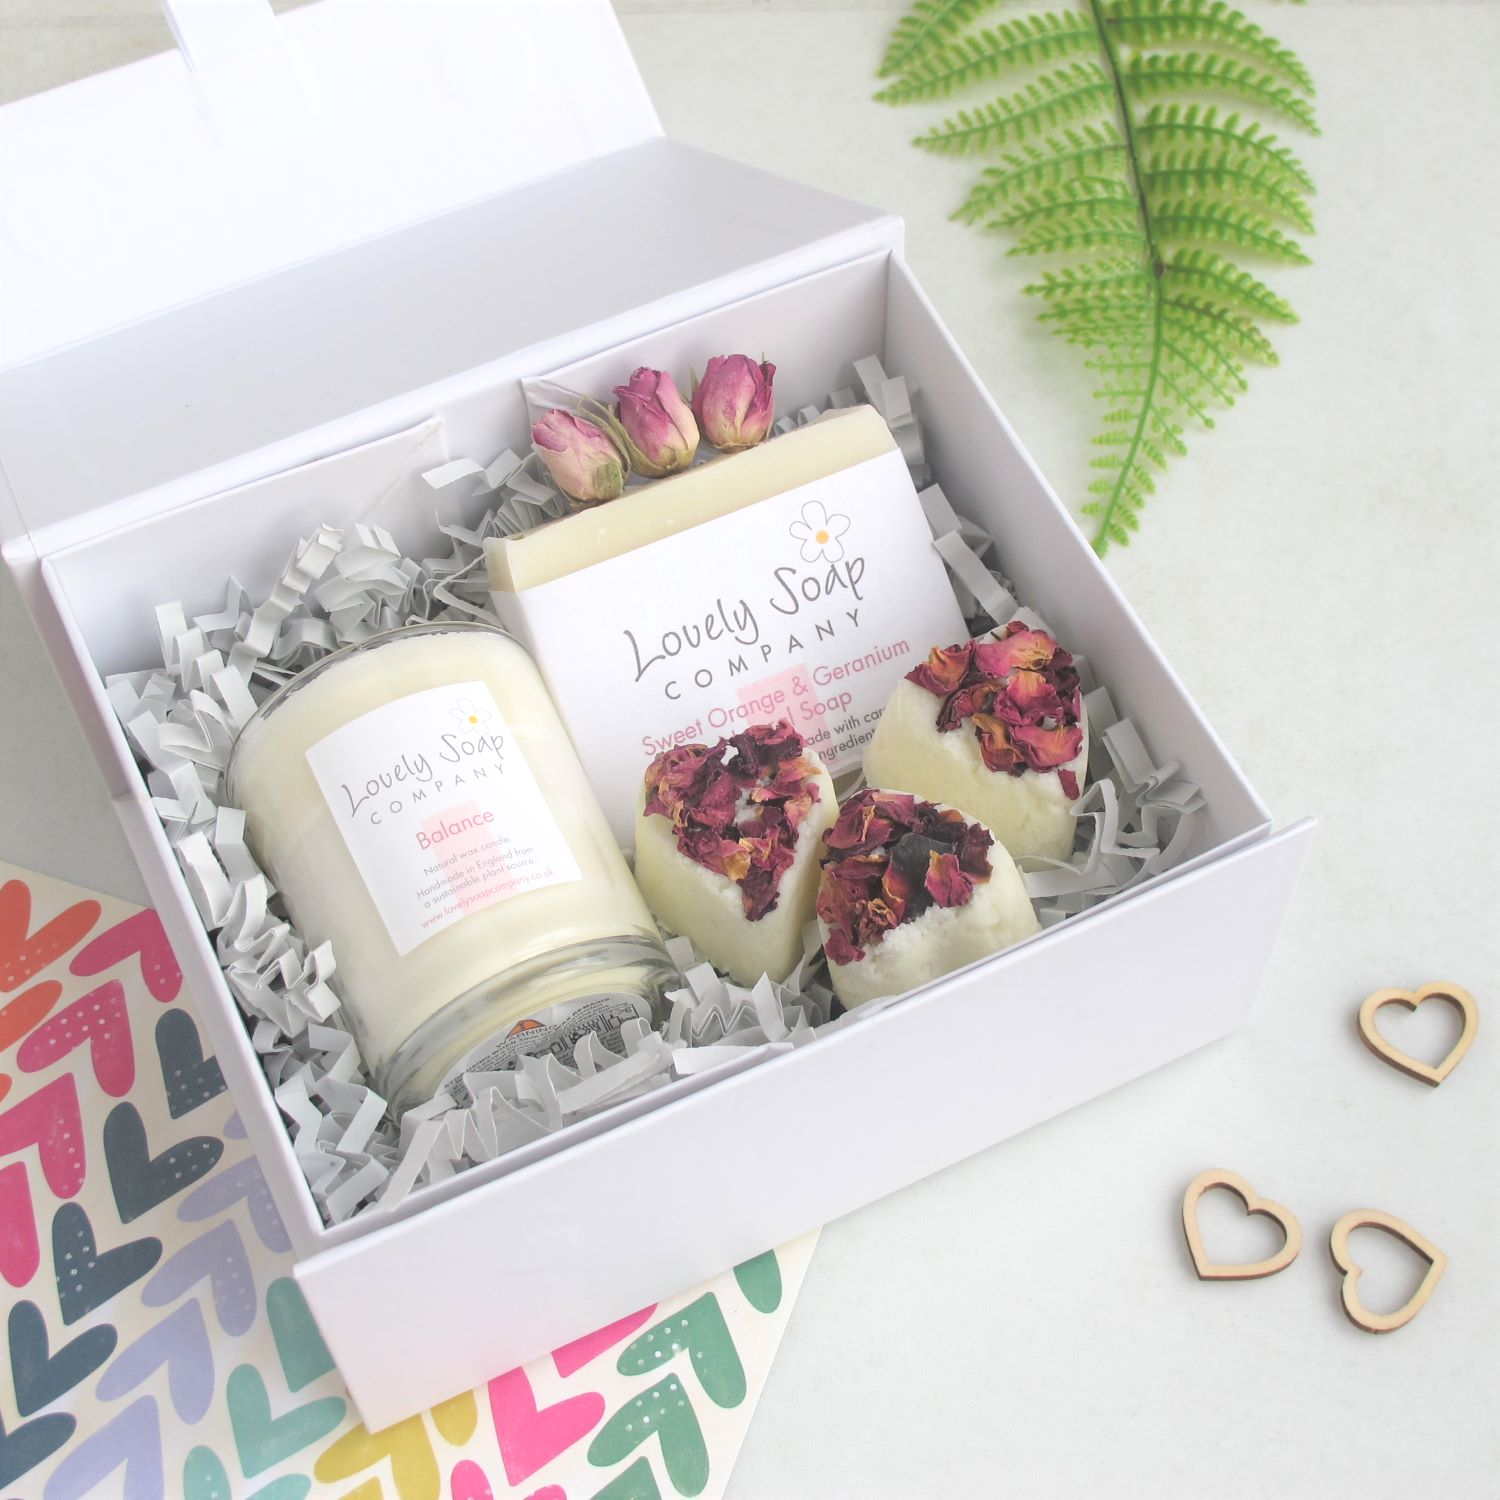 Natural Pamper Gift Set by Lovely Soap Co